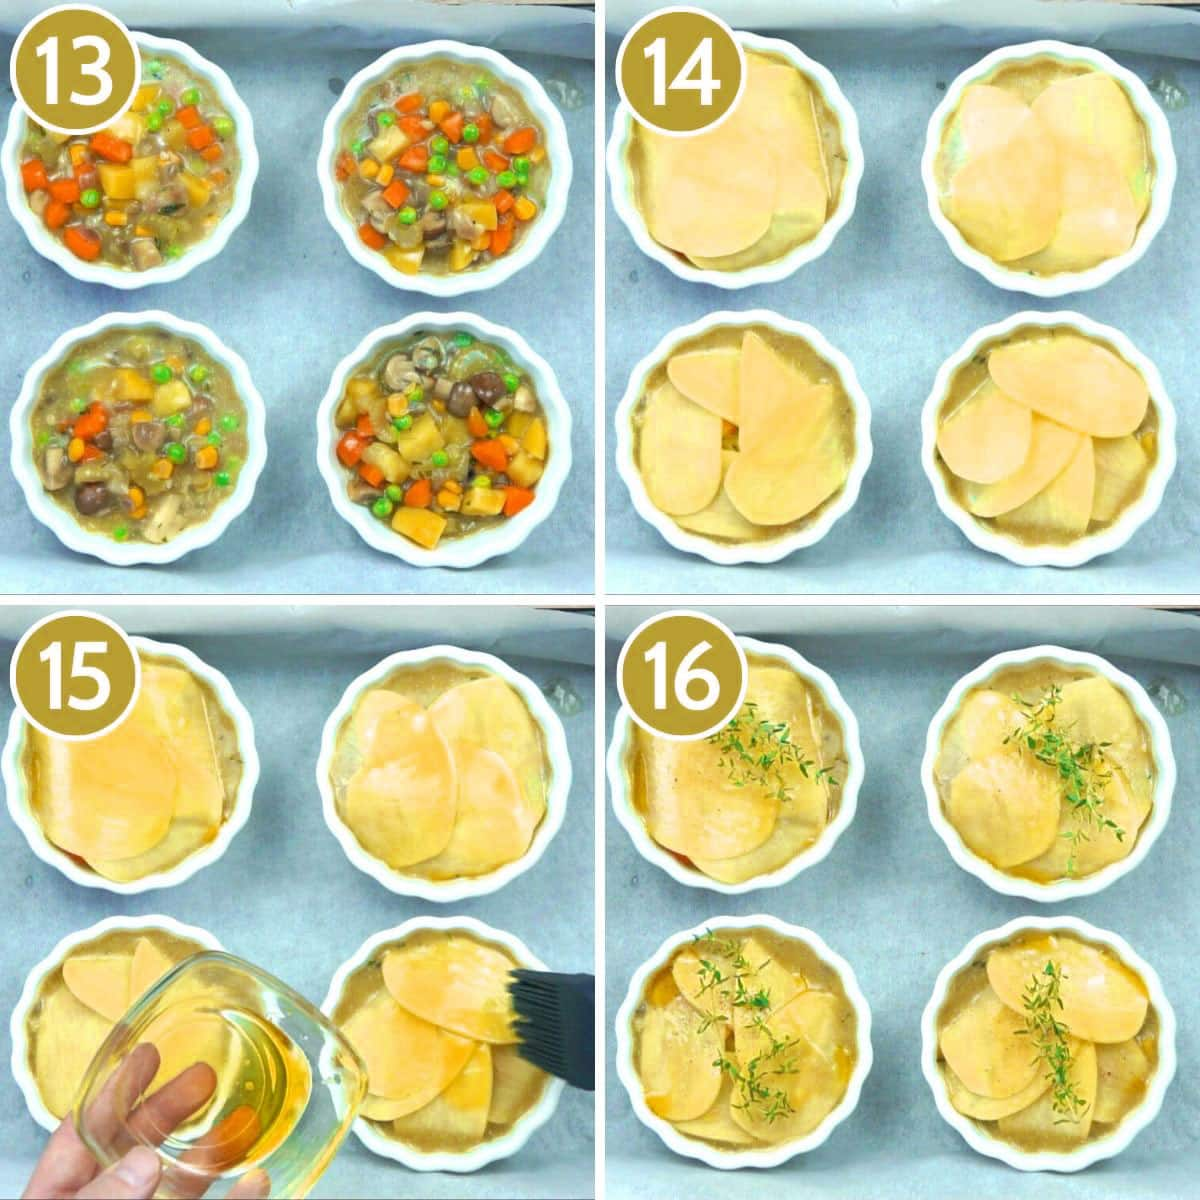 Step photos to make vegan pot pie showing the mini pots filled with veggie stew topped with sliced potatoes